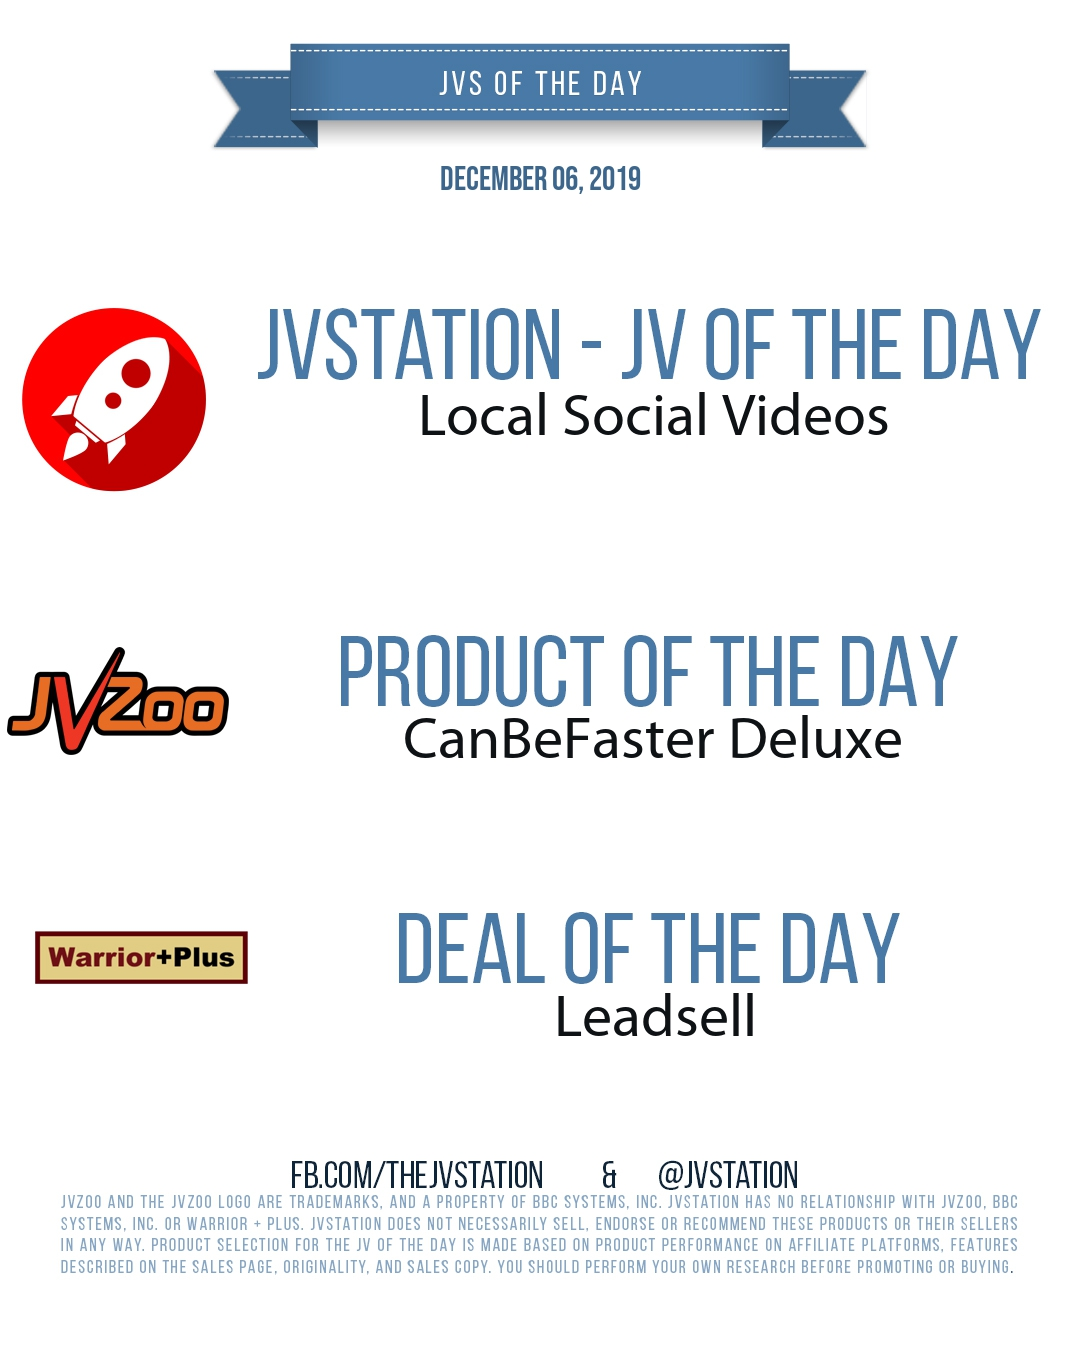 JVs of the day - December 06, 2019